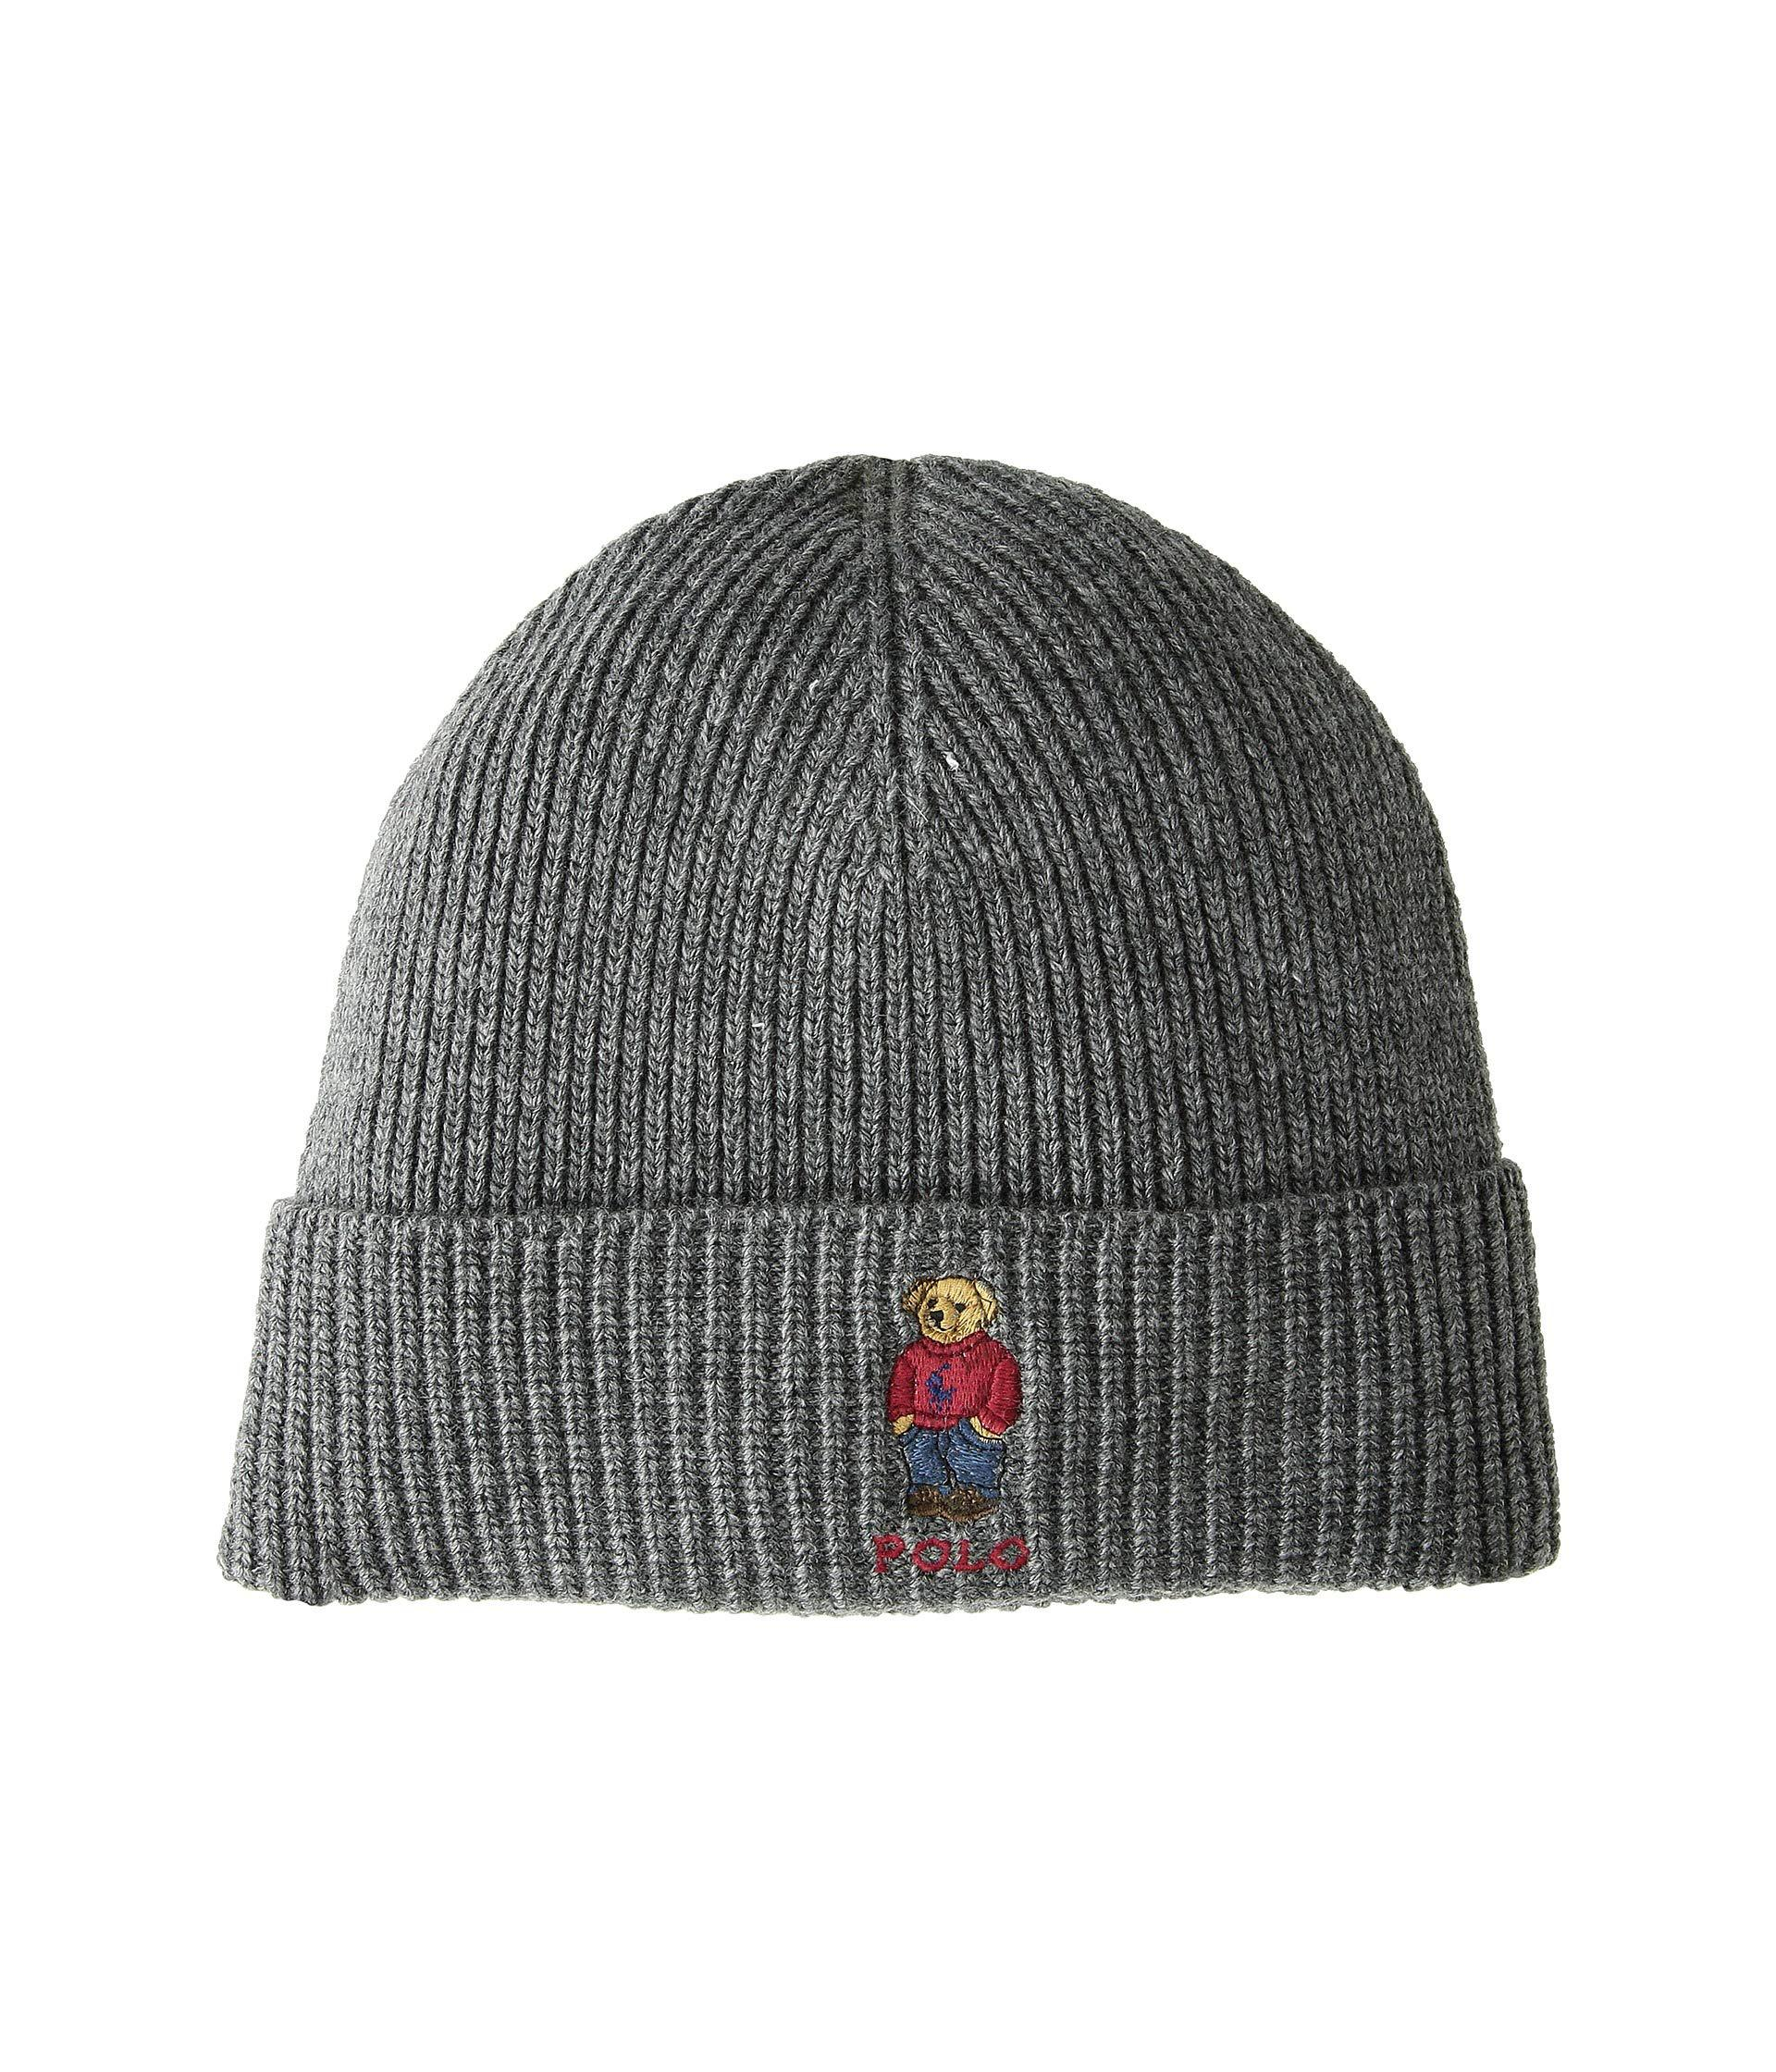 3ac71bc1 polo knit hat with bear hunters